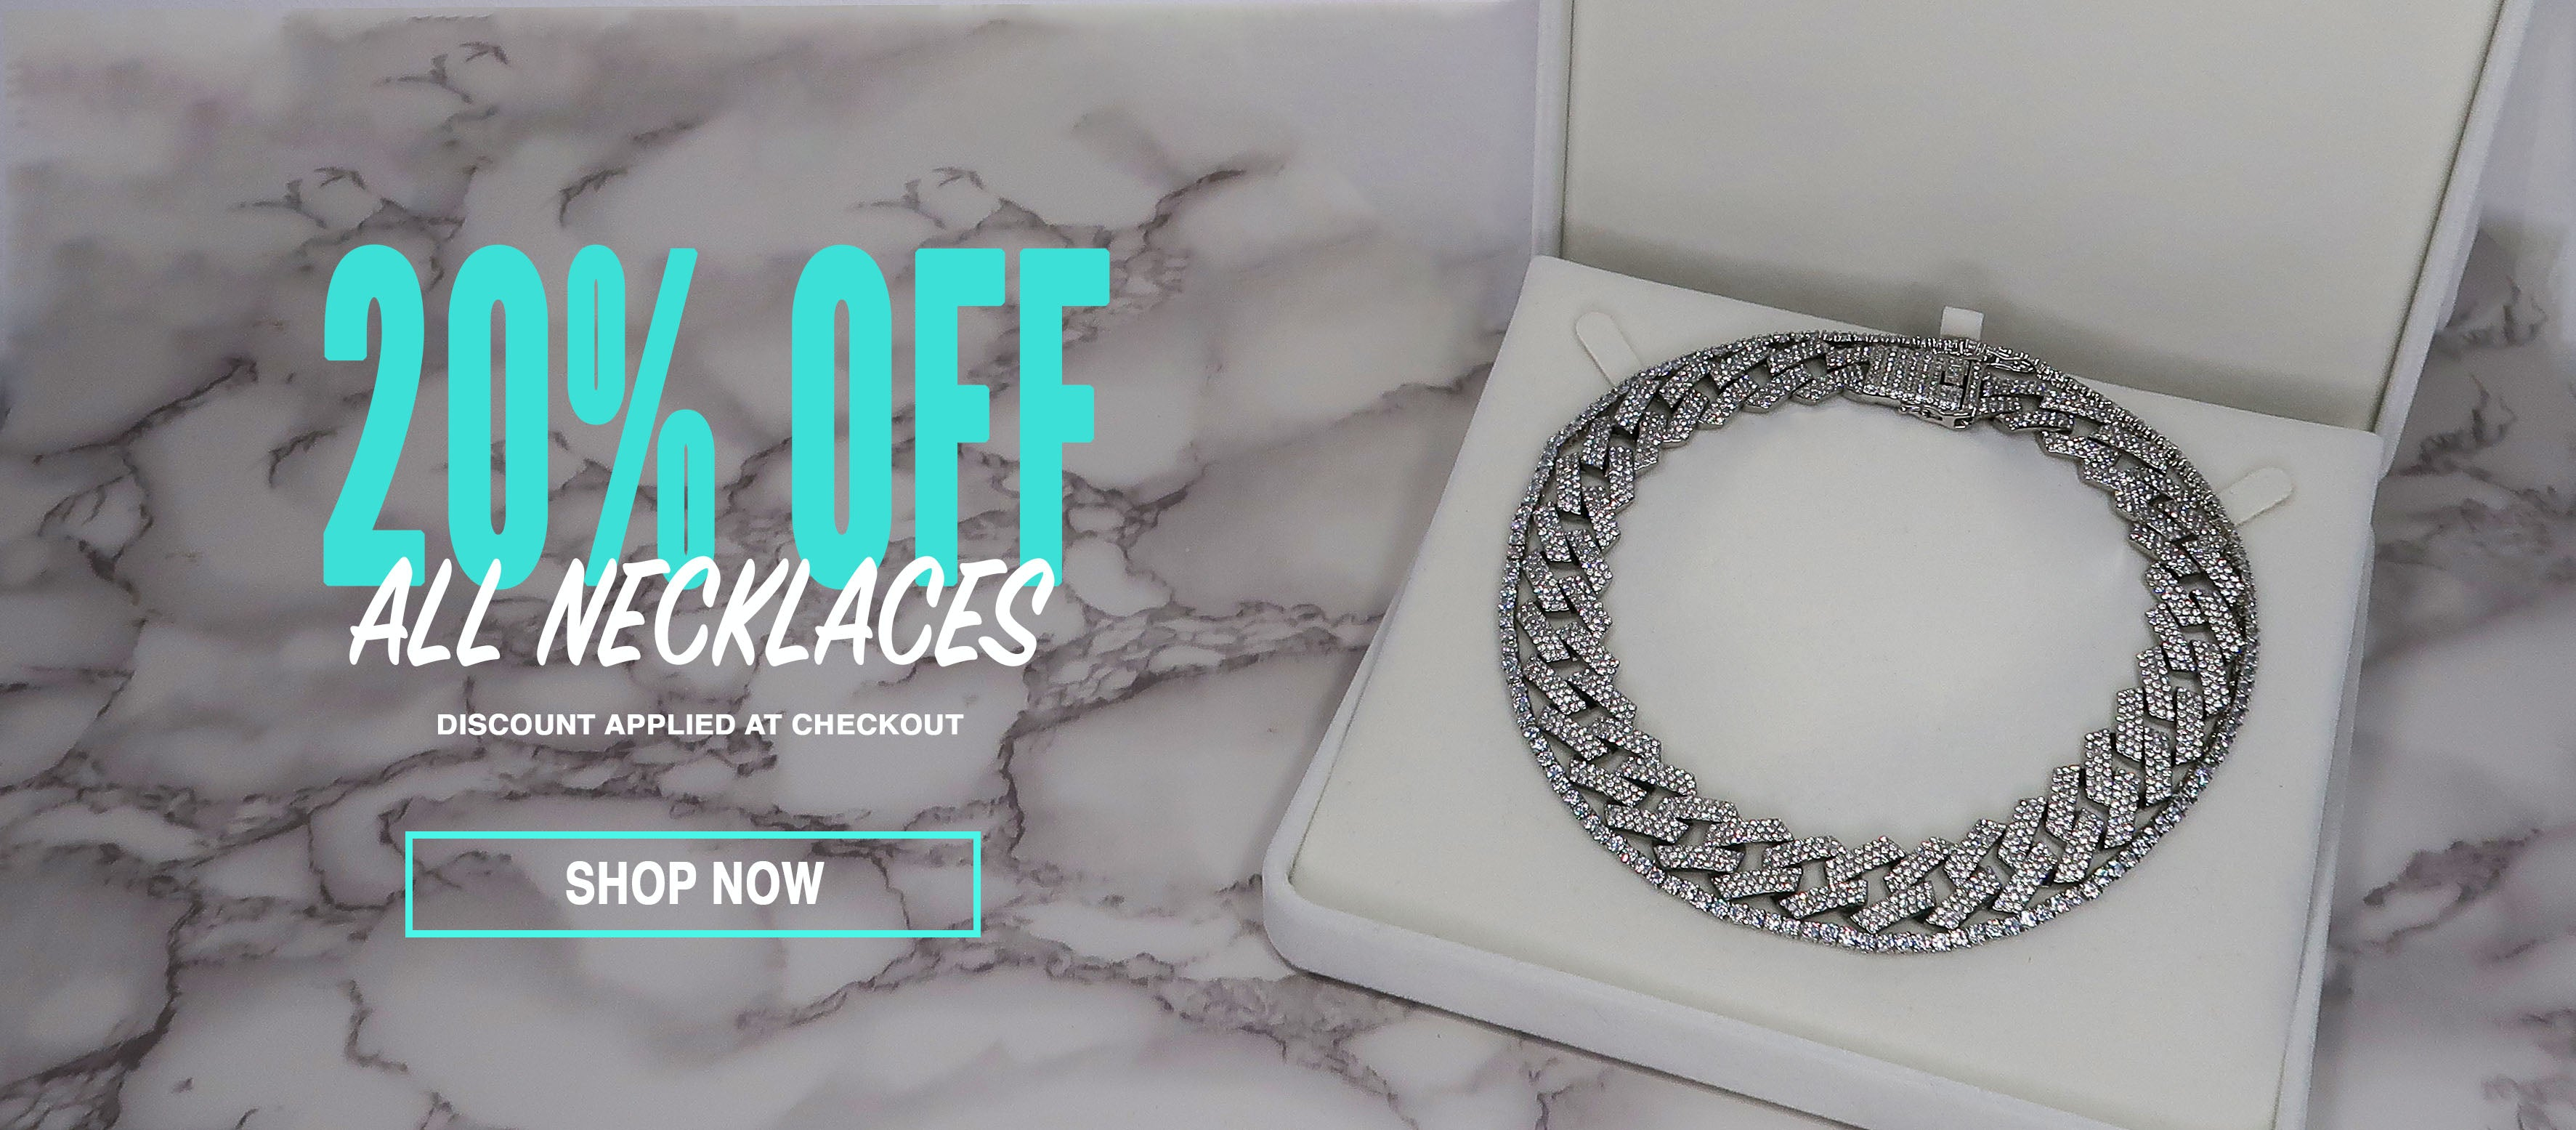 20% off necklaces